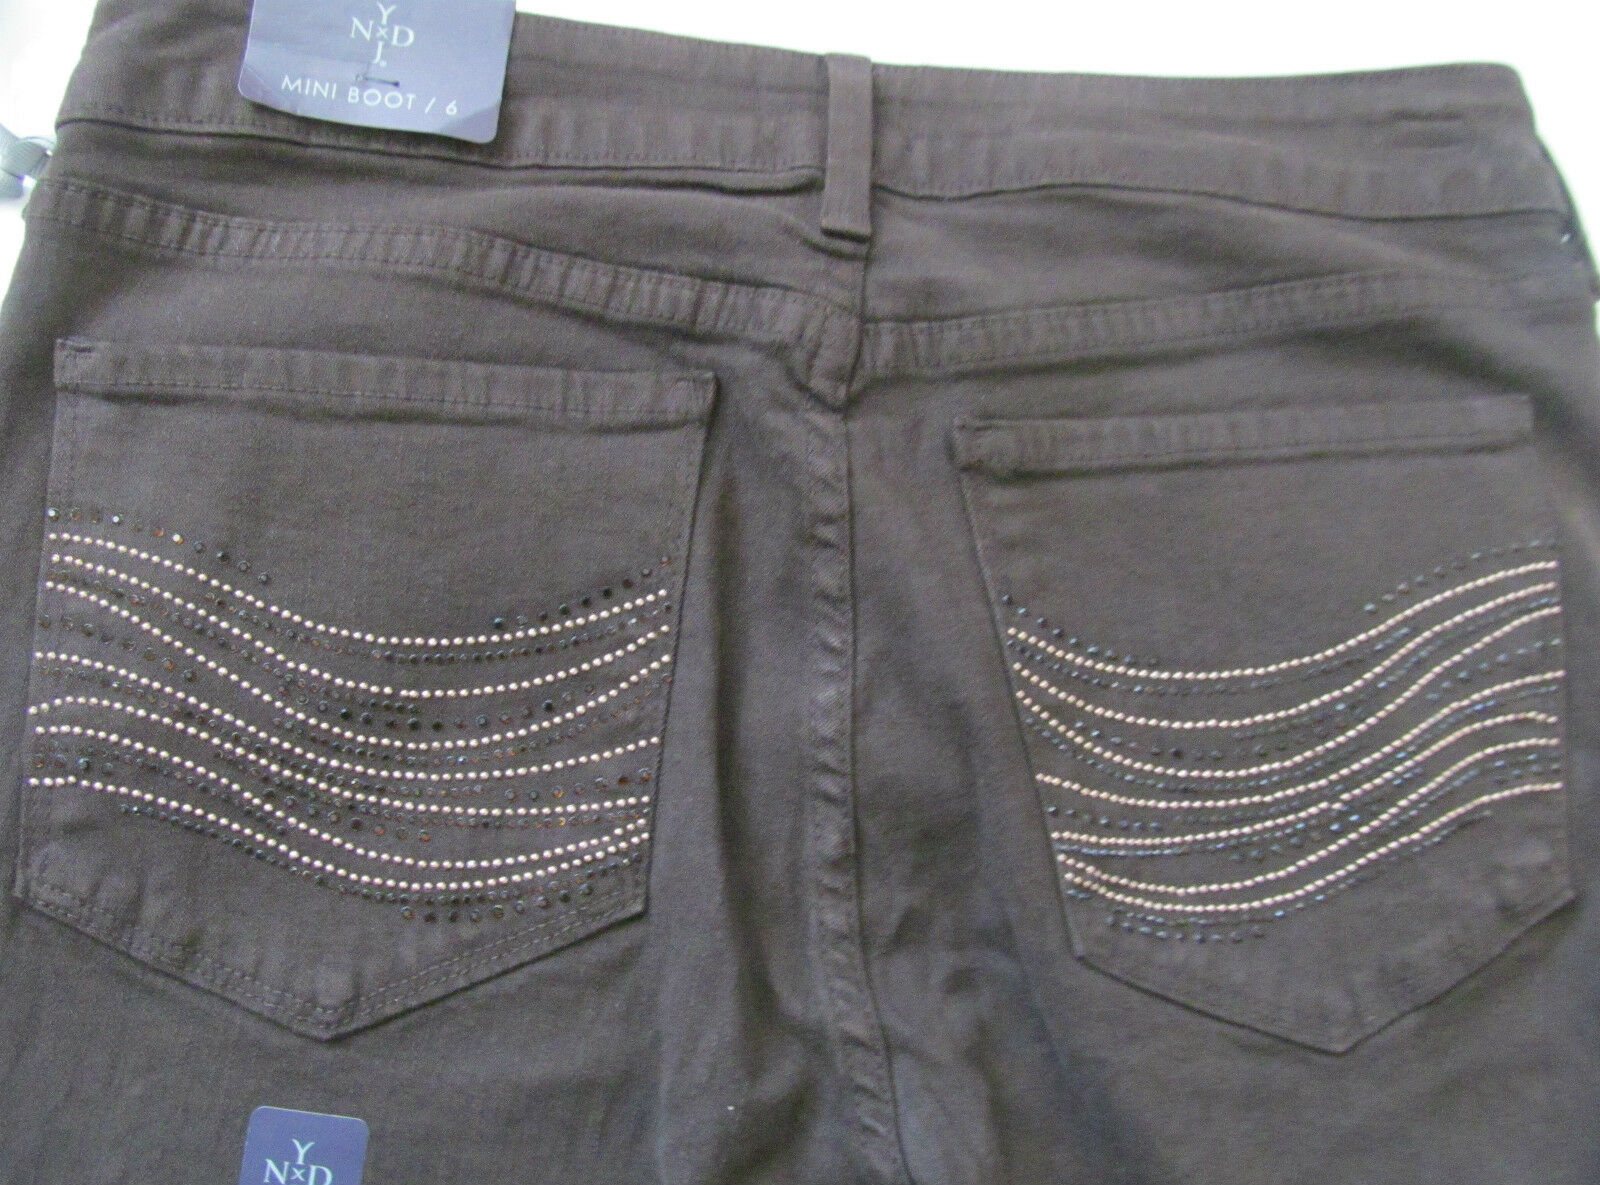 Not Your Daughter Jeans NYDJ Billie  MiniBoot mahogany microstudded Jeans - NWT